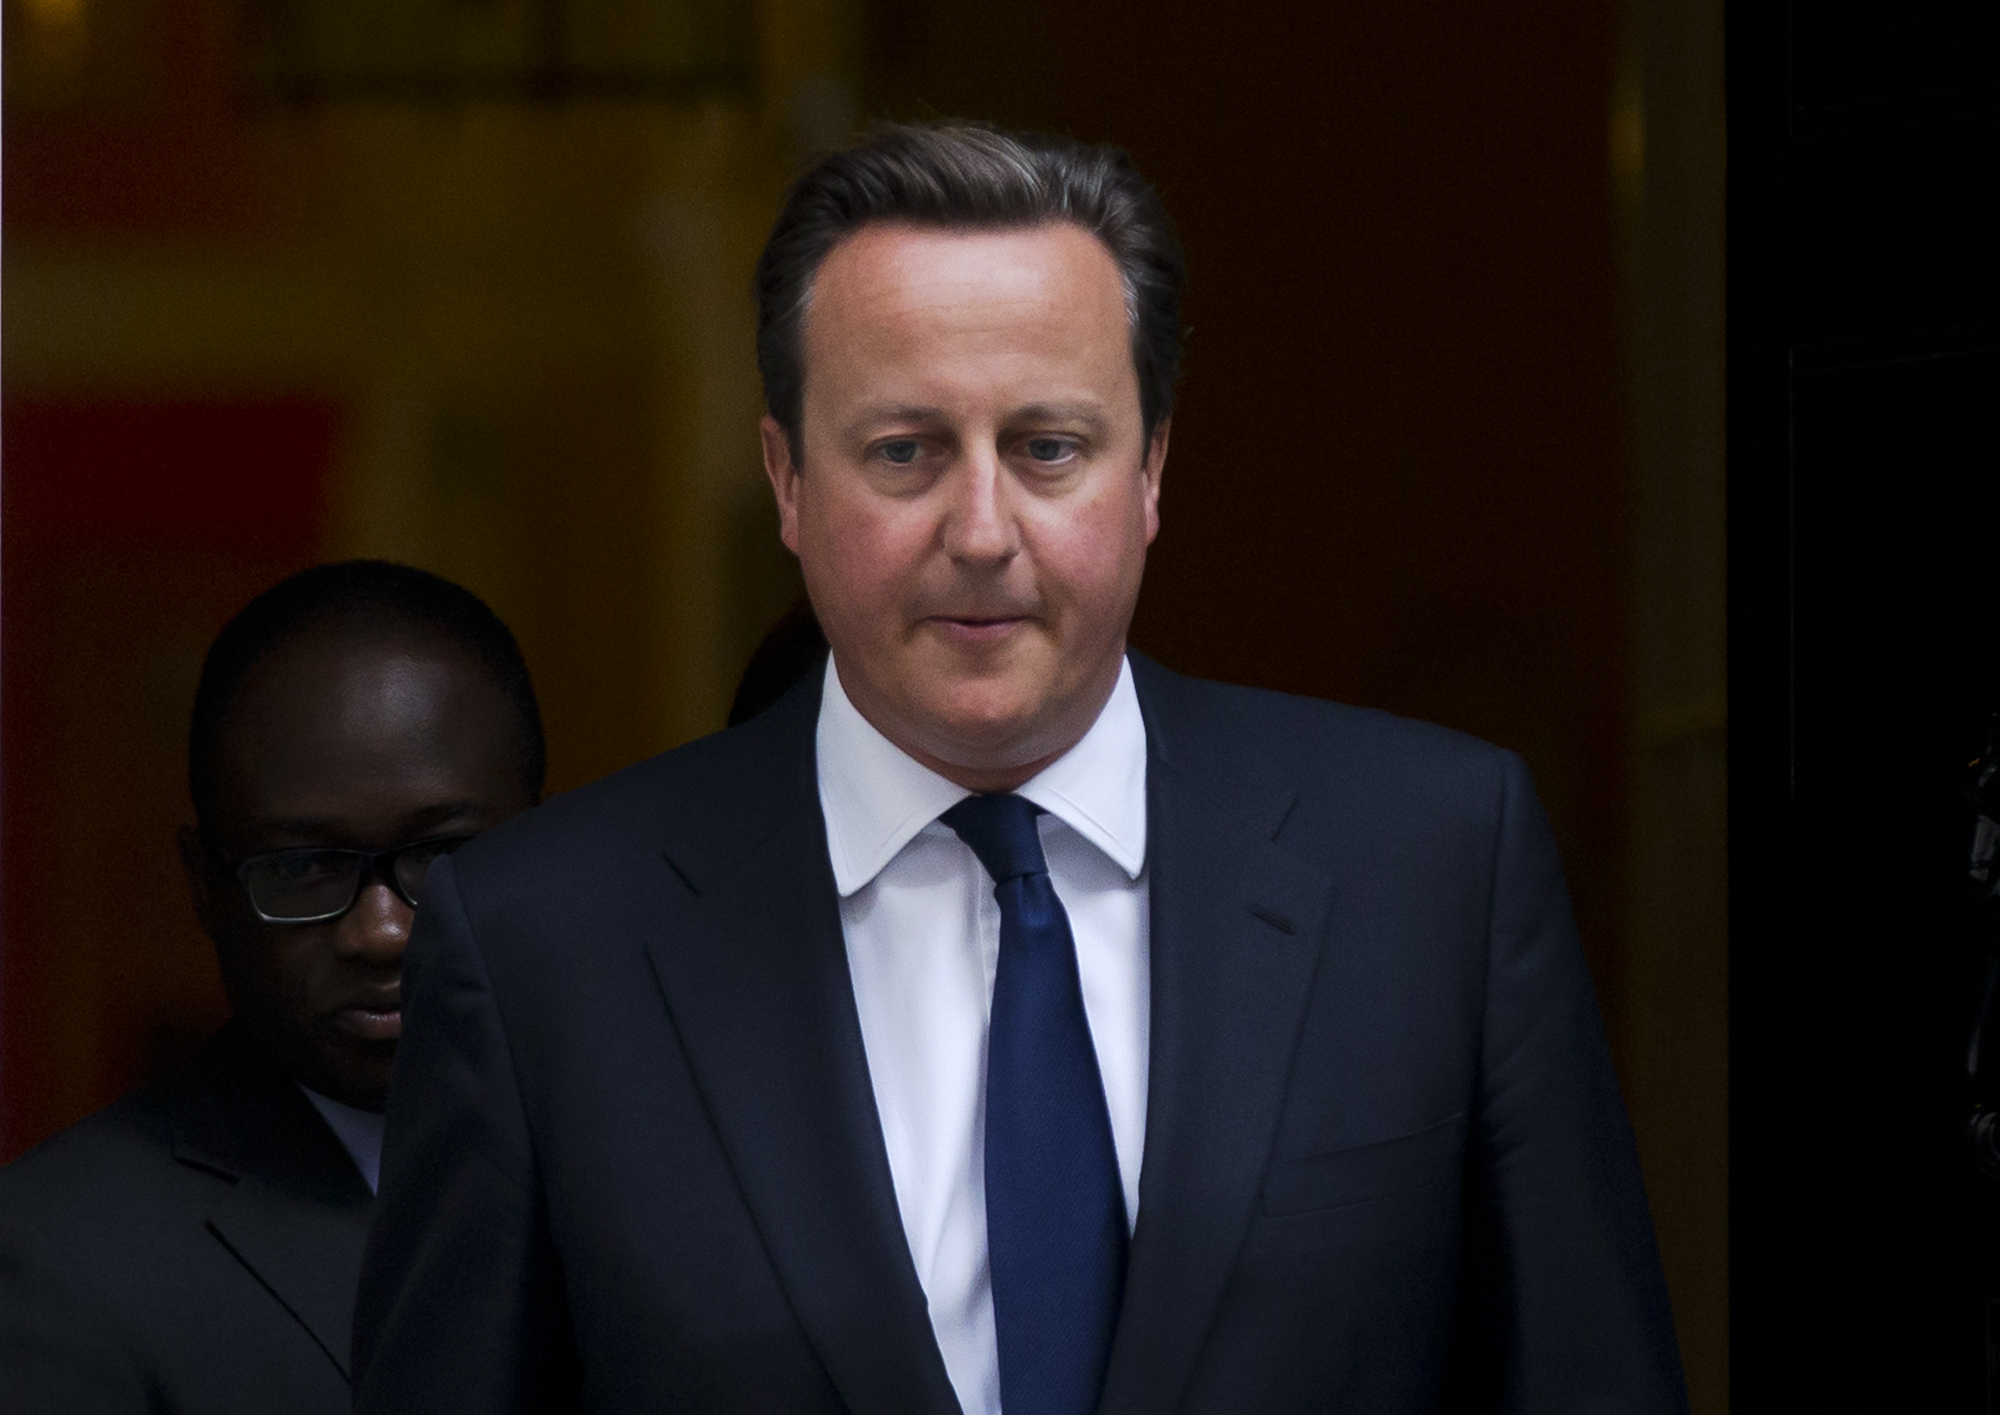 Britain's Prime Minister David Cameron leaves 10 Downing Street in London, to be driven to the Houses of Parliament for a debate and vote on Syria, Aug. 29, 2013.